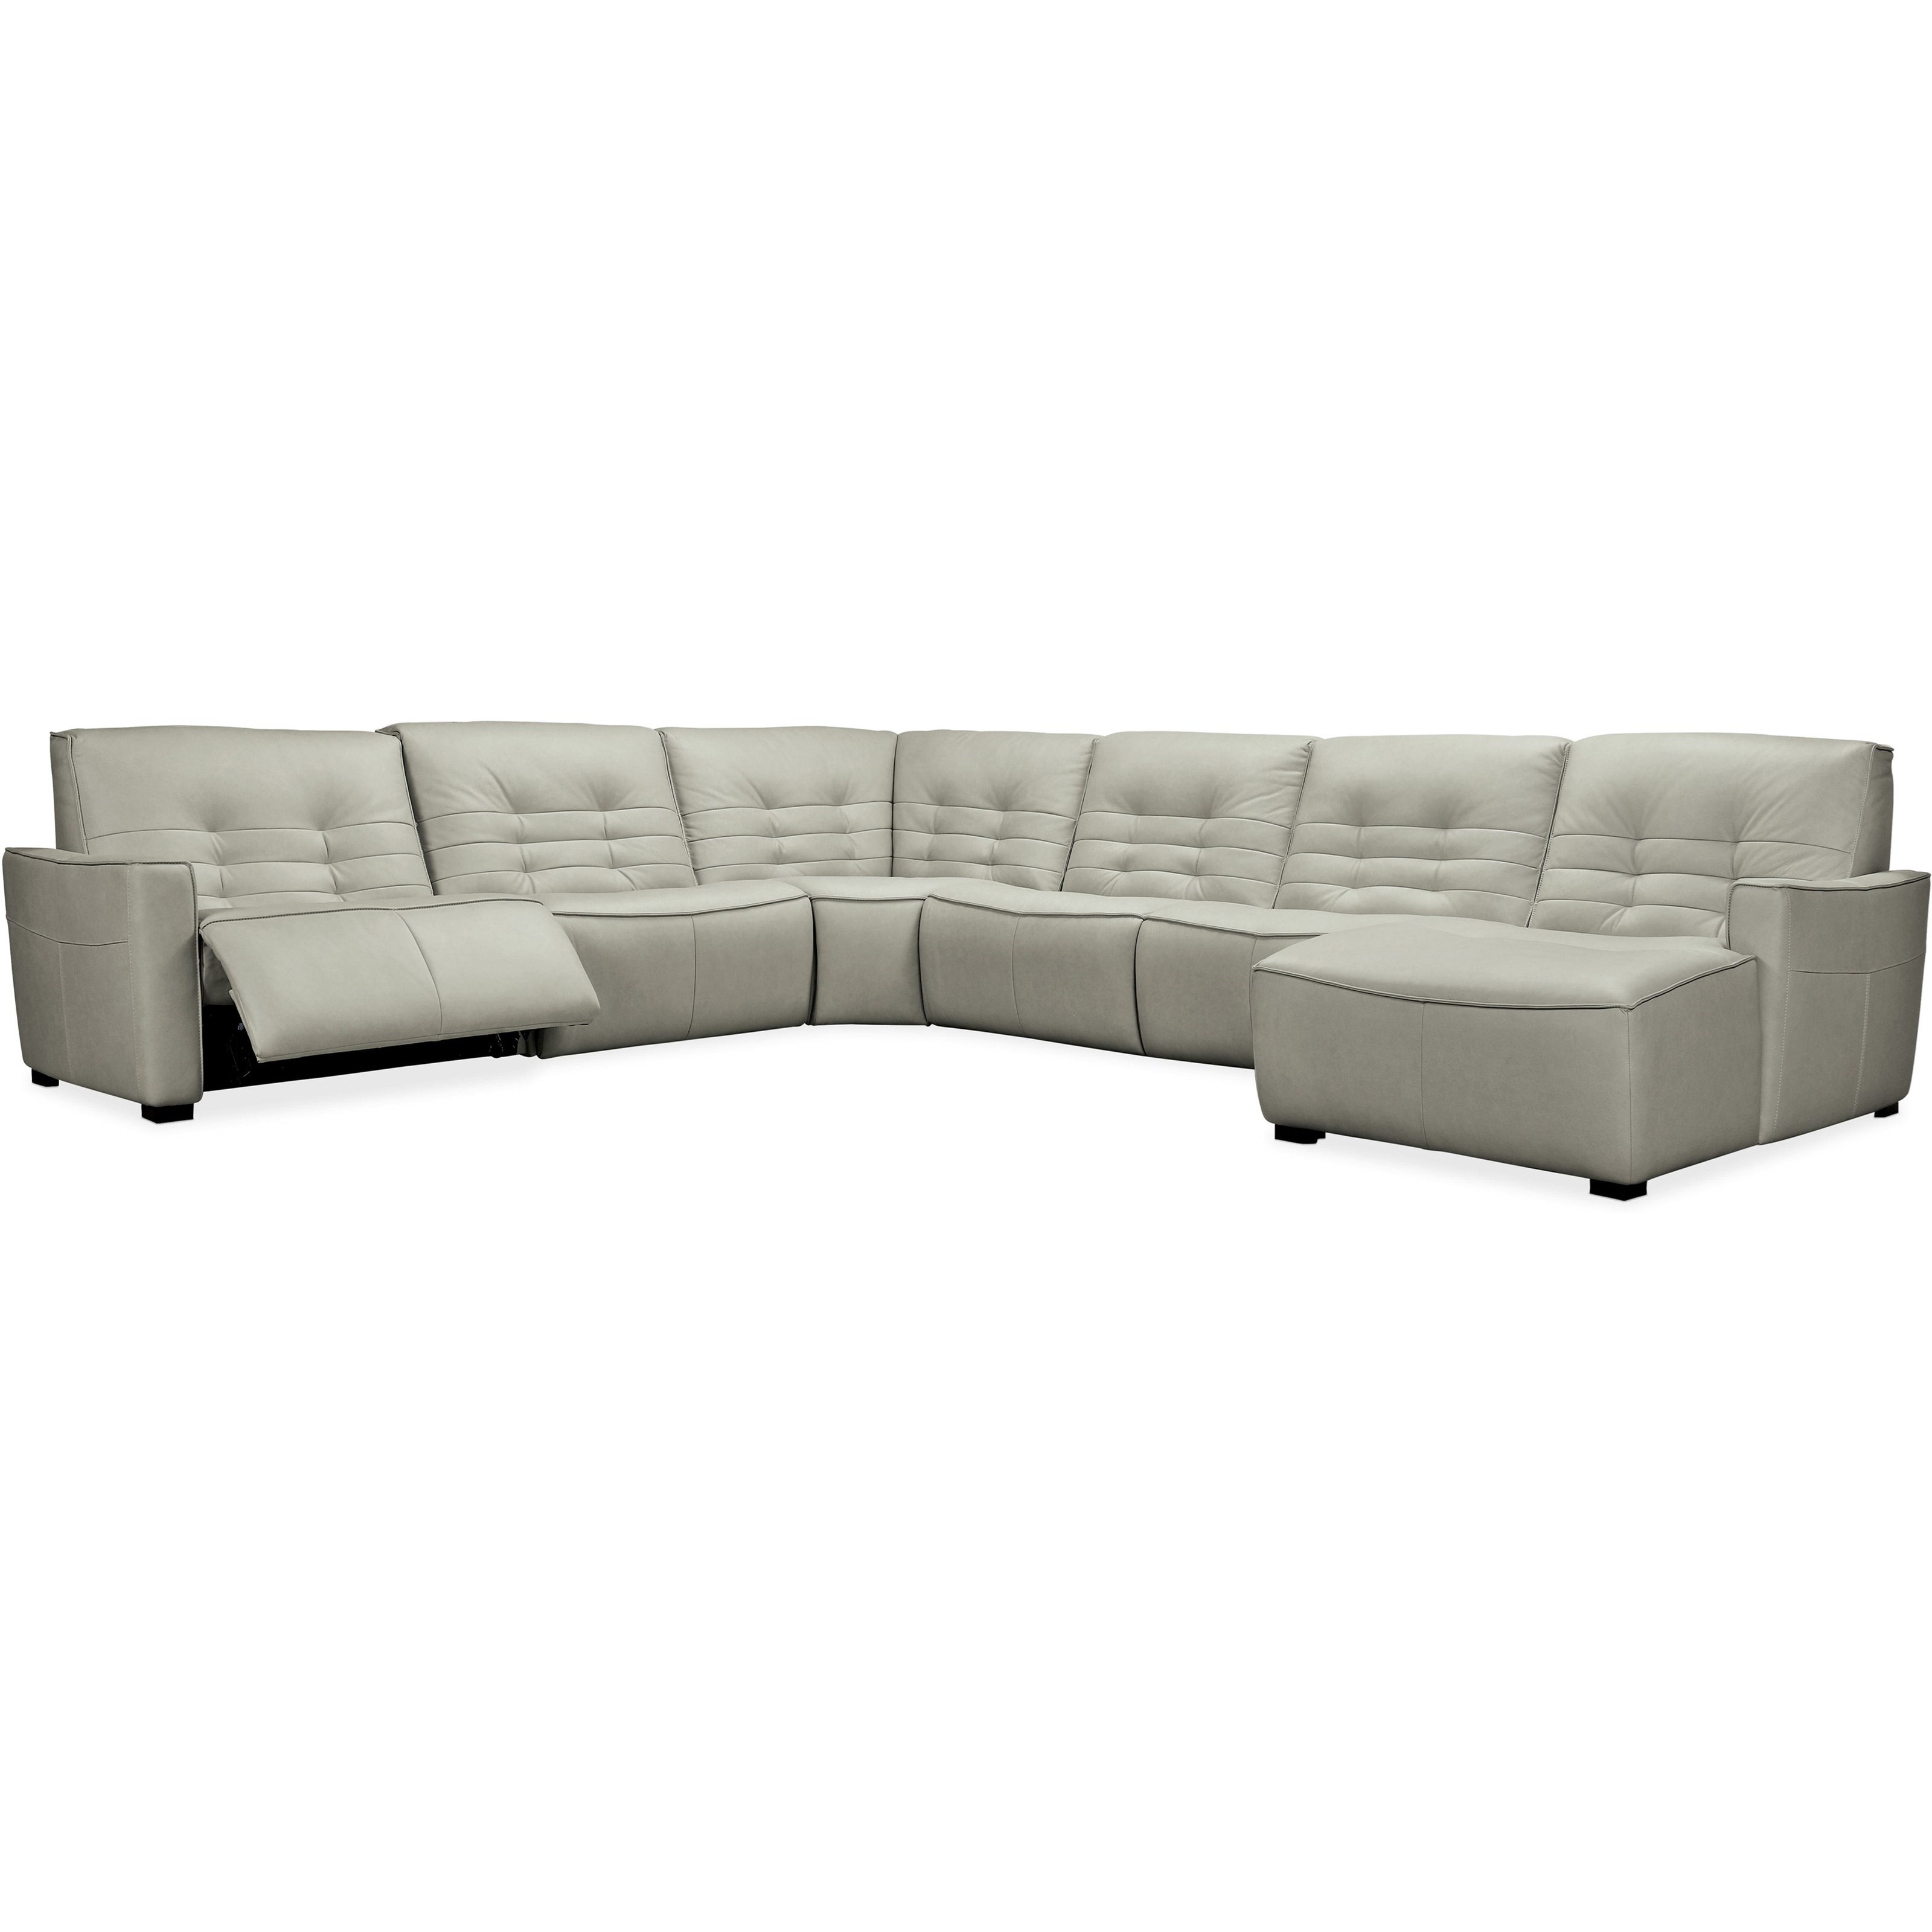 Reaux 6-Piece Power Sectional with RAF Chaise by Hooker Furniture at Baer's Furniture